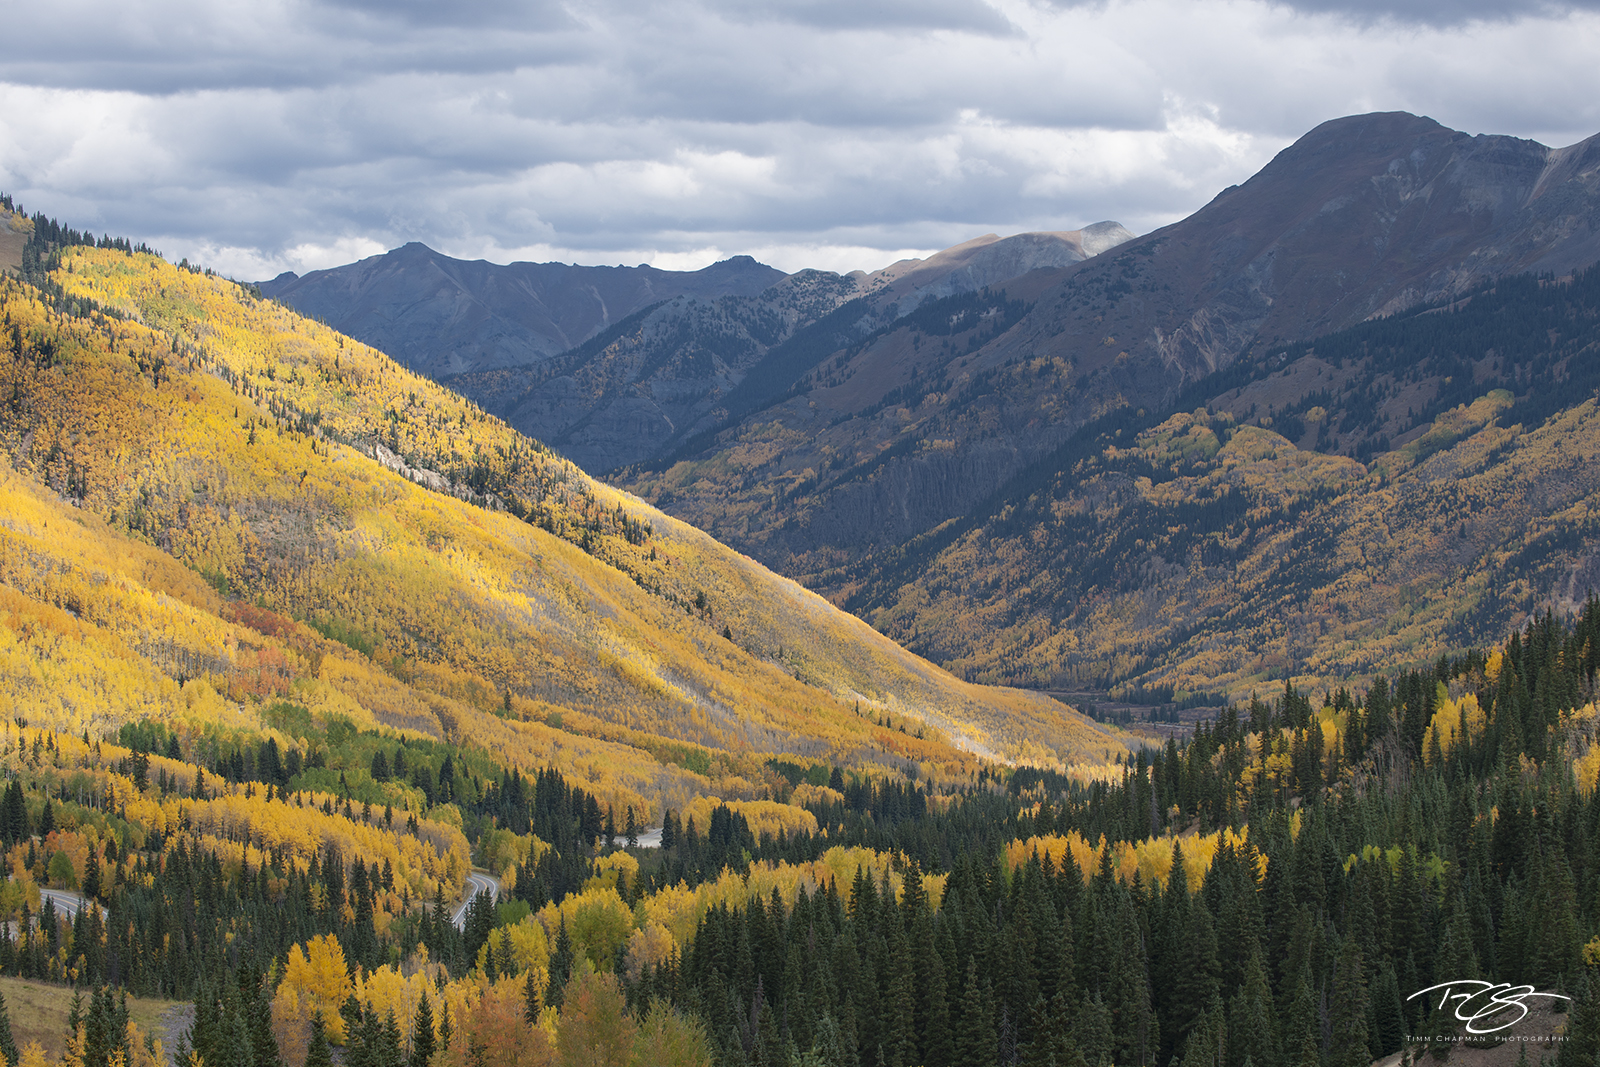 The hillsides erupt with colour in the San Juan Mountains of Colorado